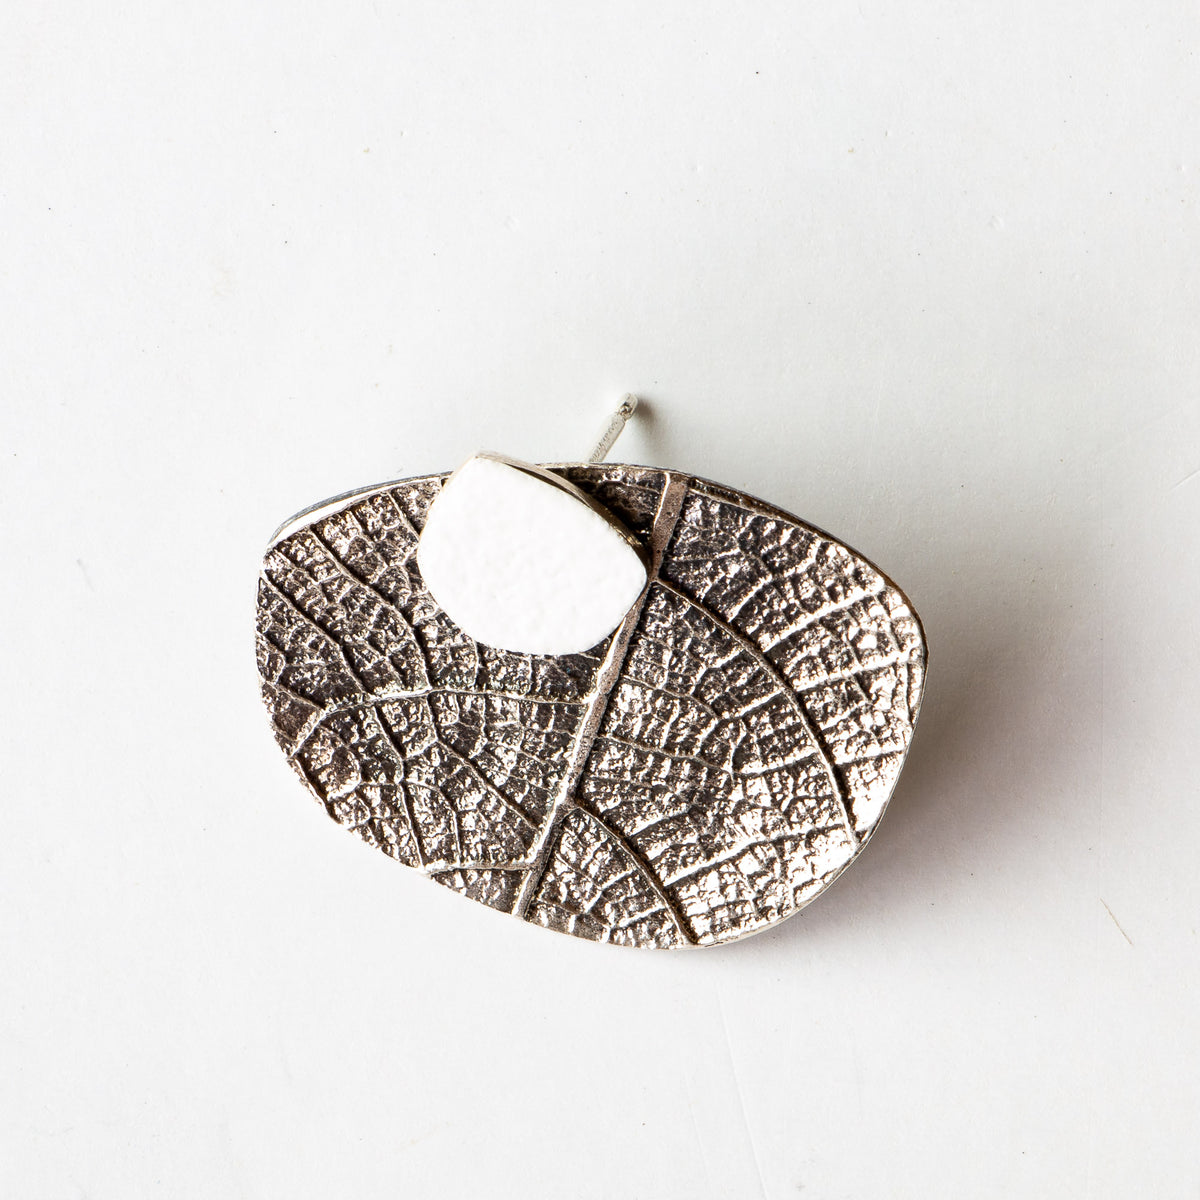 Detail - Silver & White Color Ear Jacket Earrings - Sold by Chic & Basta